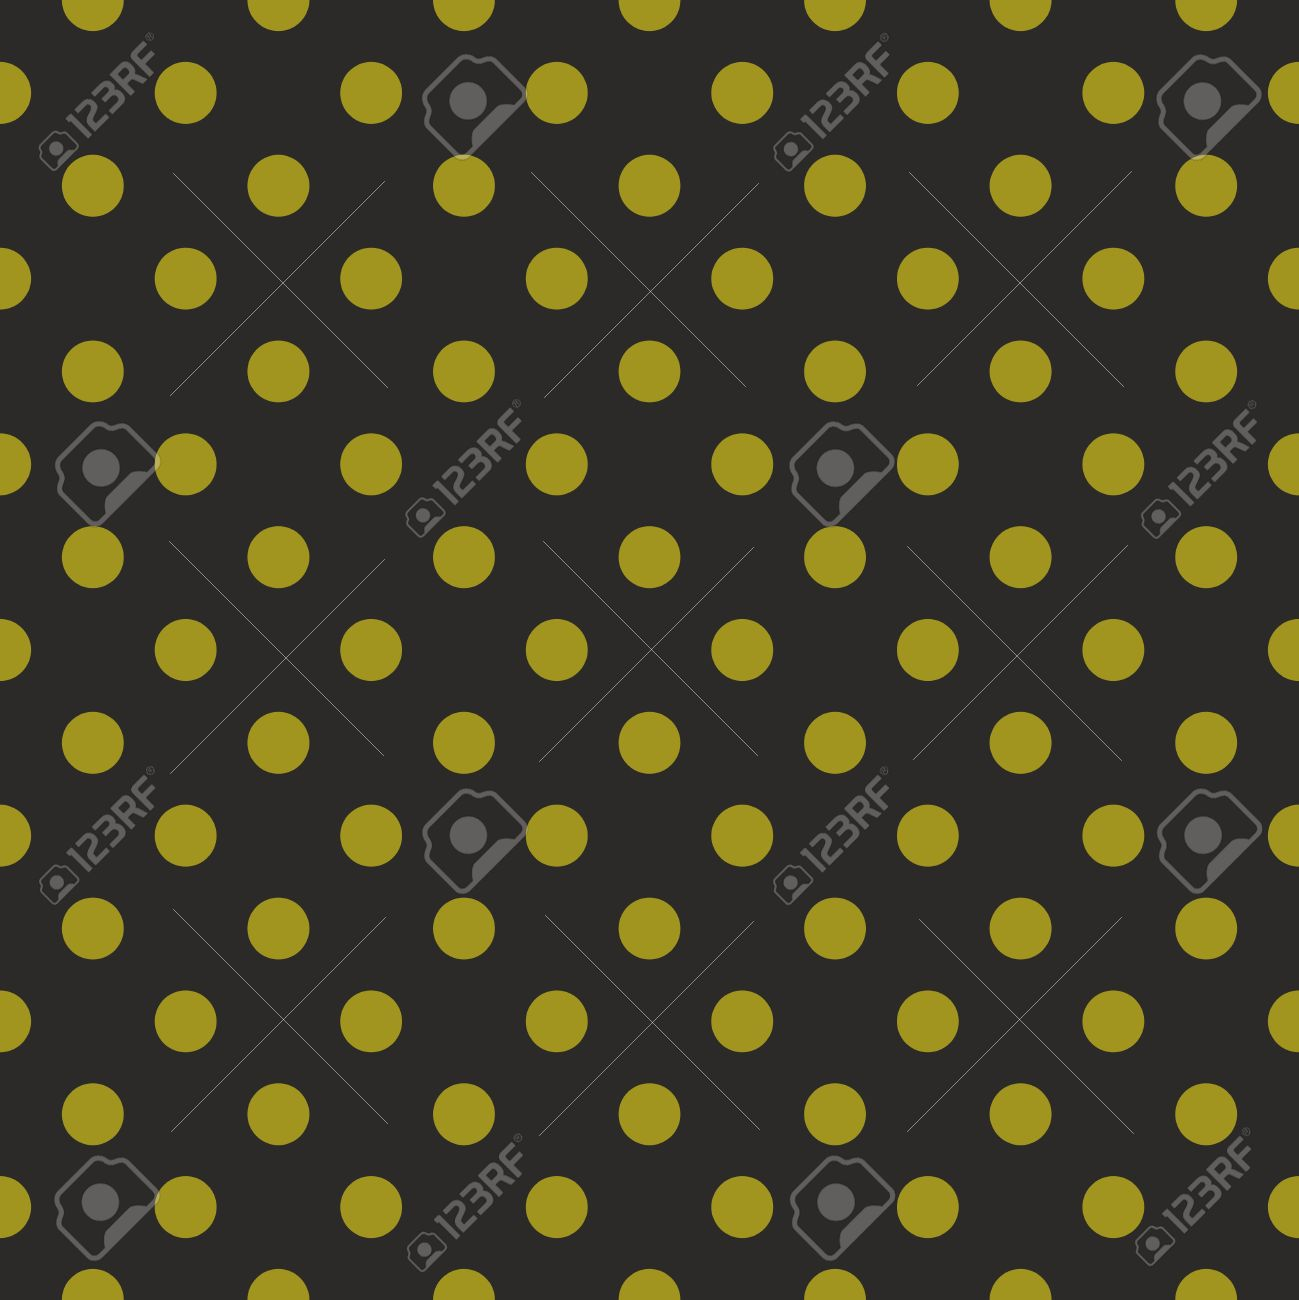 Download Wallpaper Halloween Polka Dot - 32272269-black-vector-background-with-green-polka-dots-seamless-pattern-for-halloween-desktop-wallpaper-and-w  Pictures_95736.jpg